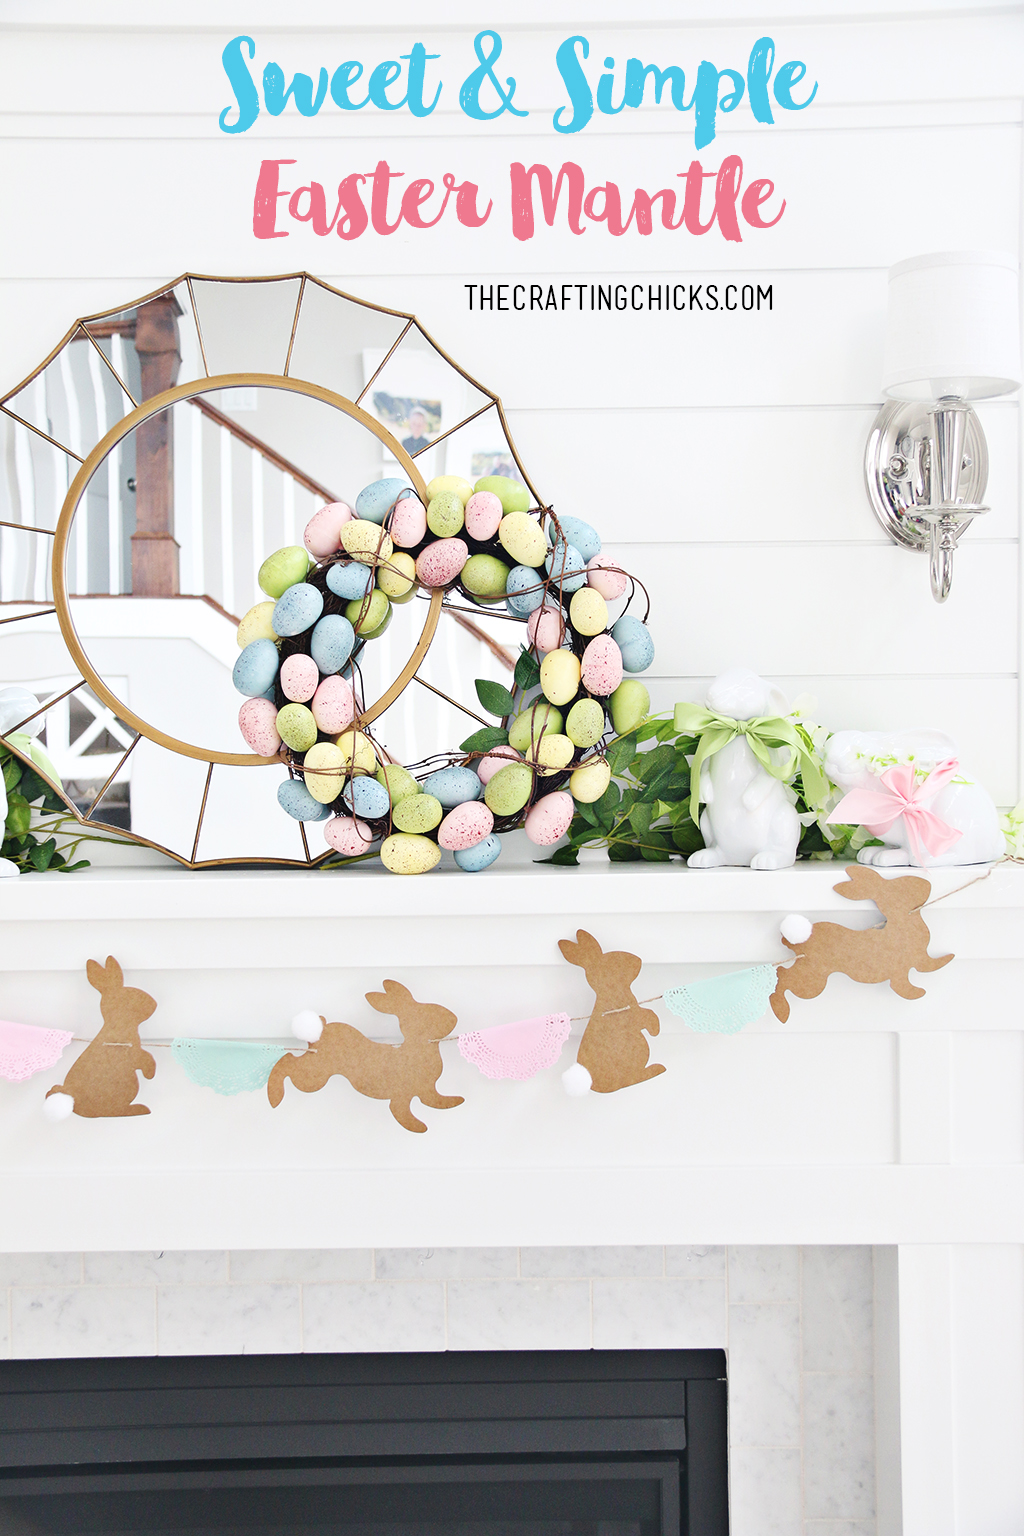 Sweet & Simple Easter Mantle for Easter Decor Inspiration this year! Sweet touches to create a simple Easter Mantle with pastel colors.